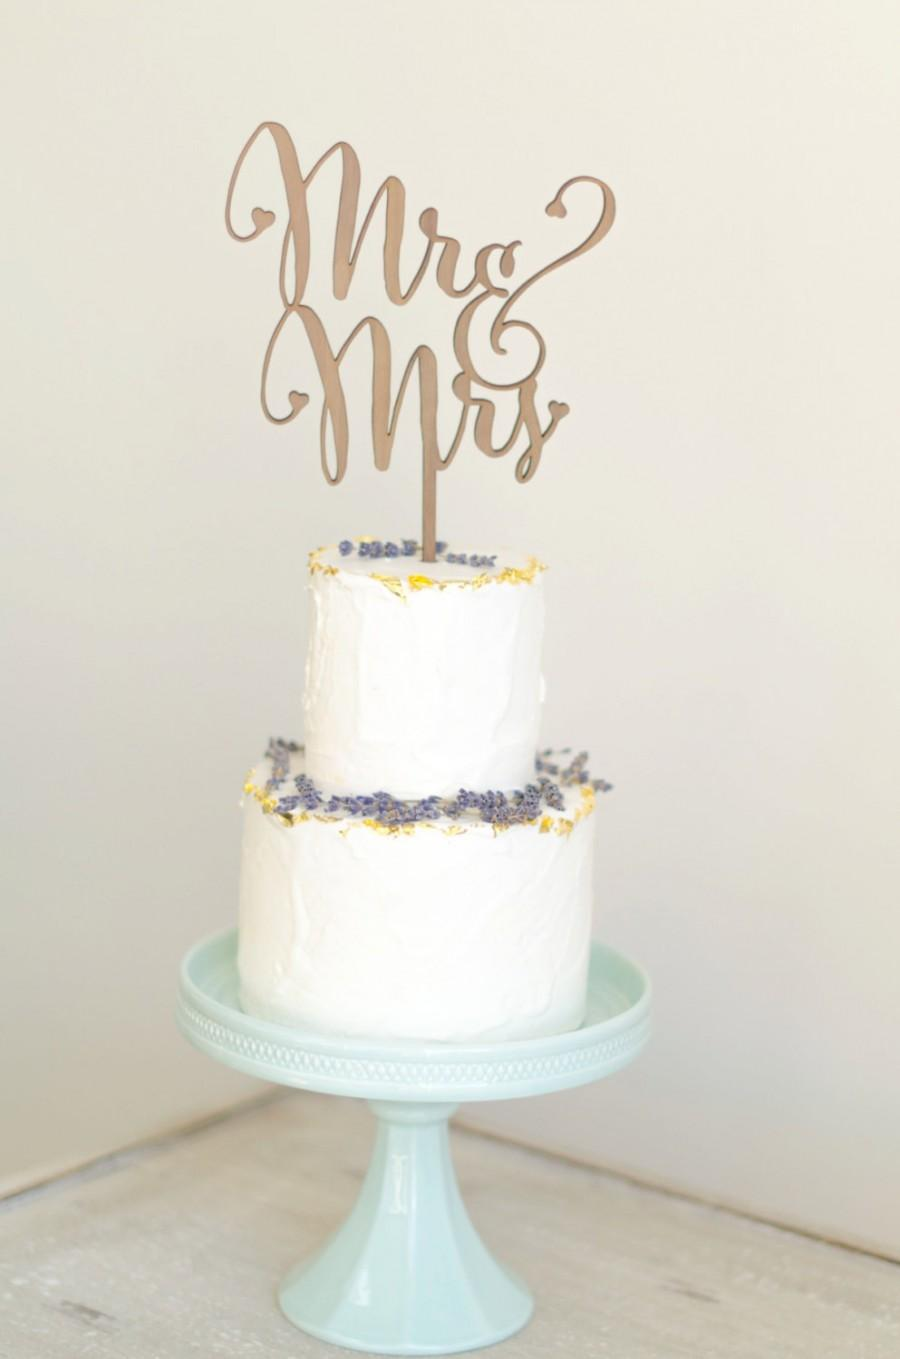 """Mariage - Mr and Mrs Rustic Cake Topper - (ONE) 6"""" Laser Cut Wood Wedding Cake Topper - Rustic Cake Decoration - Genuine Walnut, Maple Wood 1/4"""" Thick"""